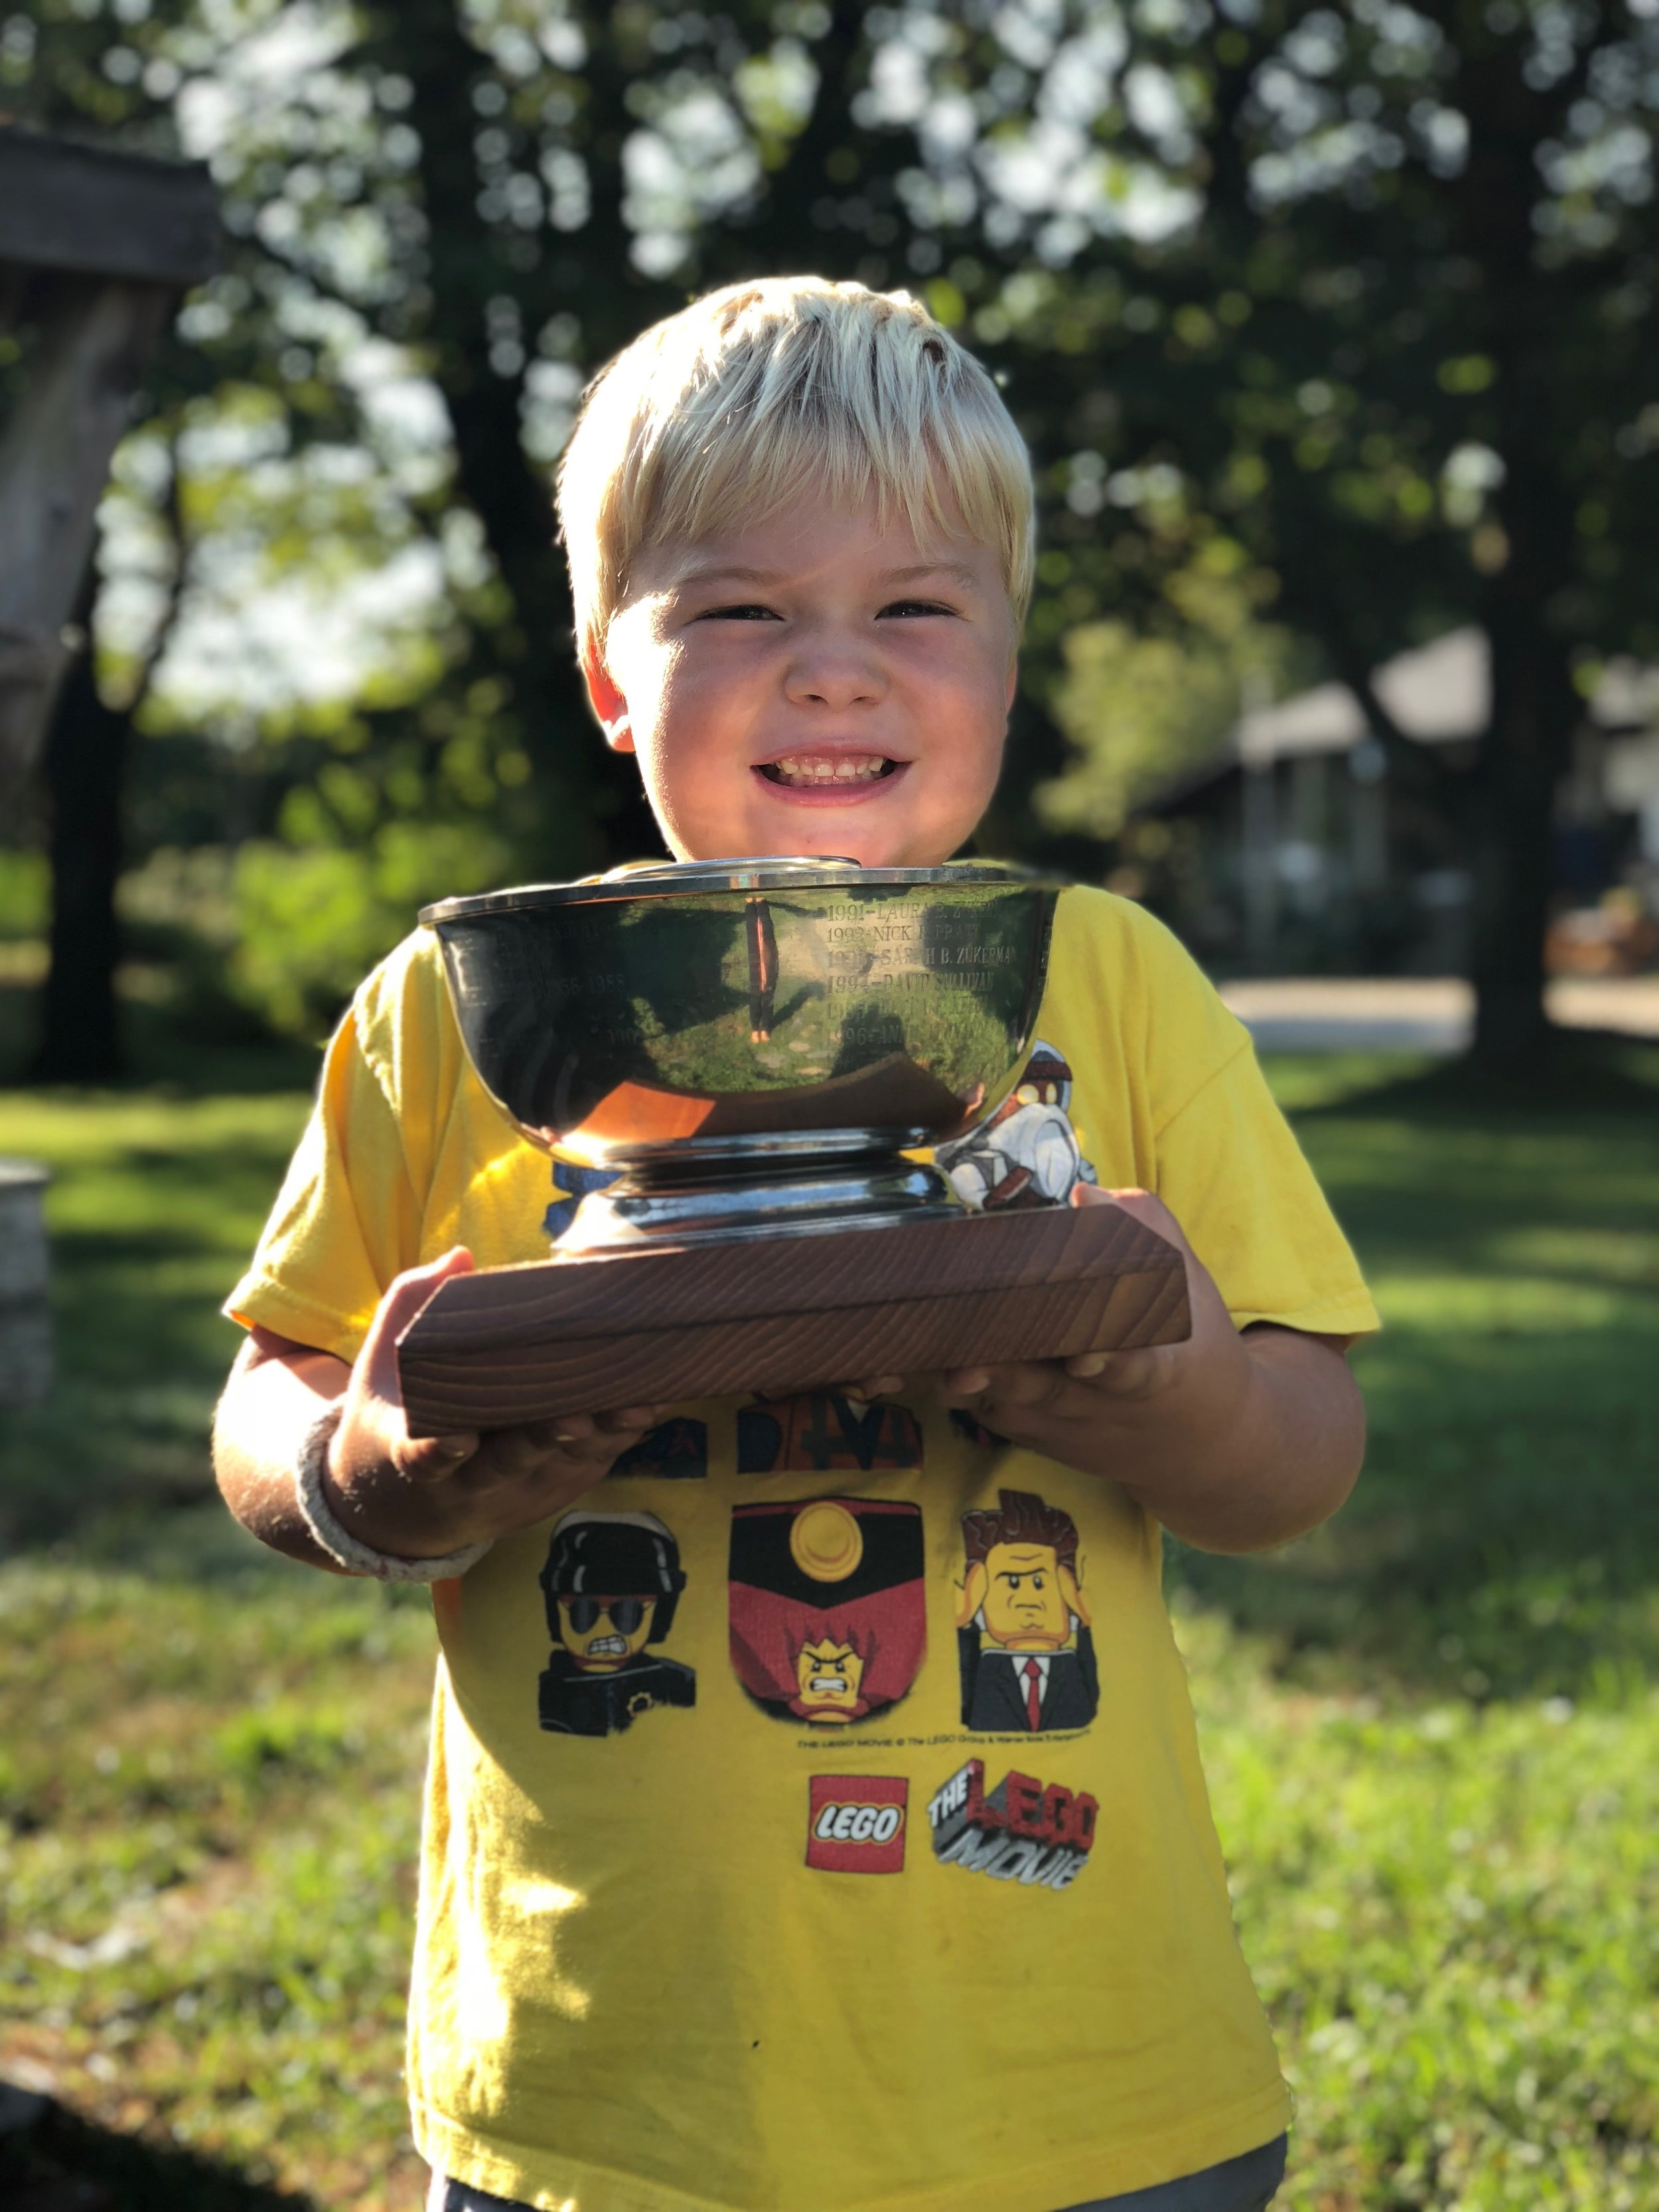 Elliott Hadlock, age 5, with his LCYC Bright- Merrill Trophy. Elliott was awarded the trophy in 2018 for his love of the ocean and willingness to learn.